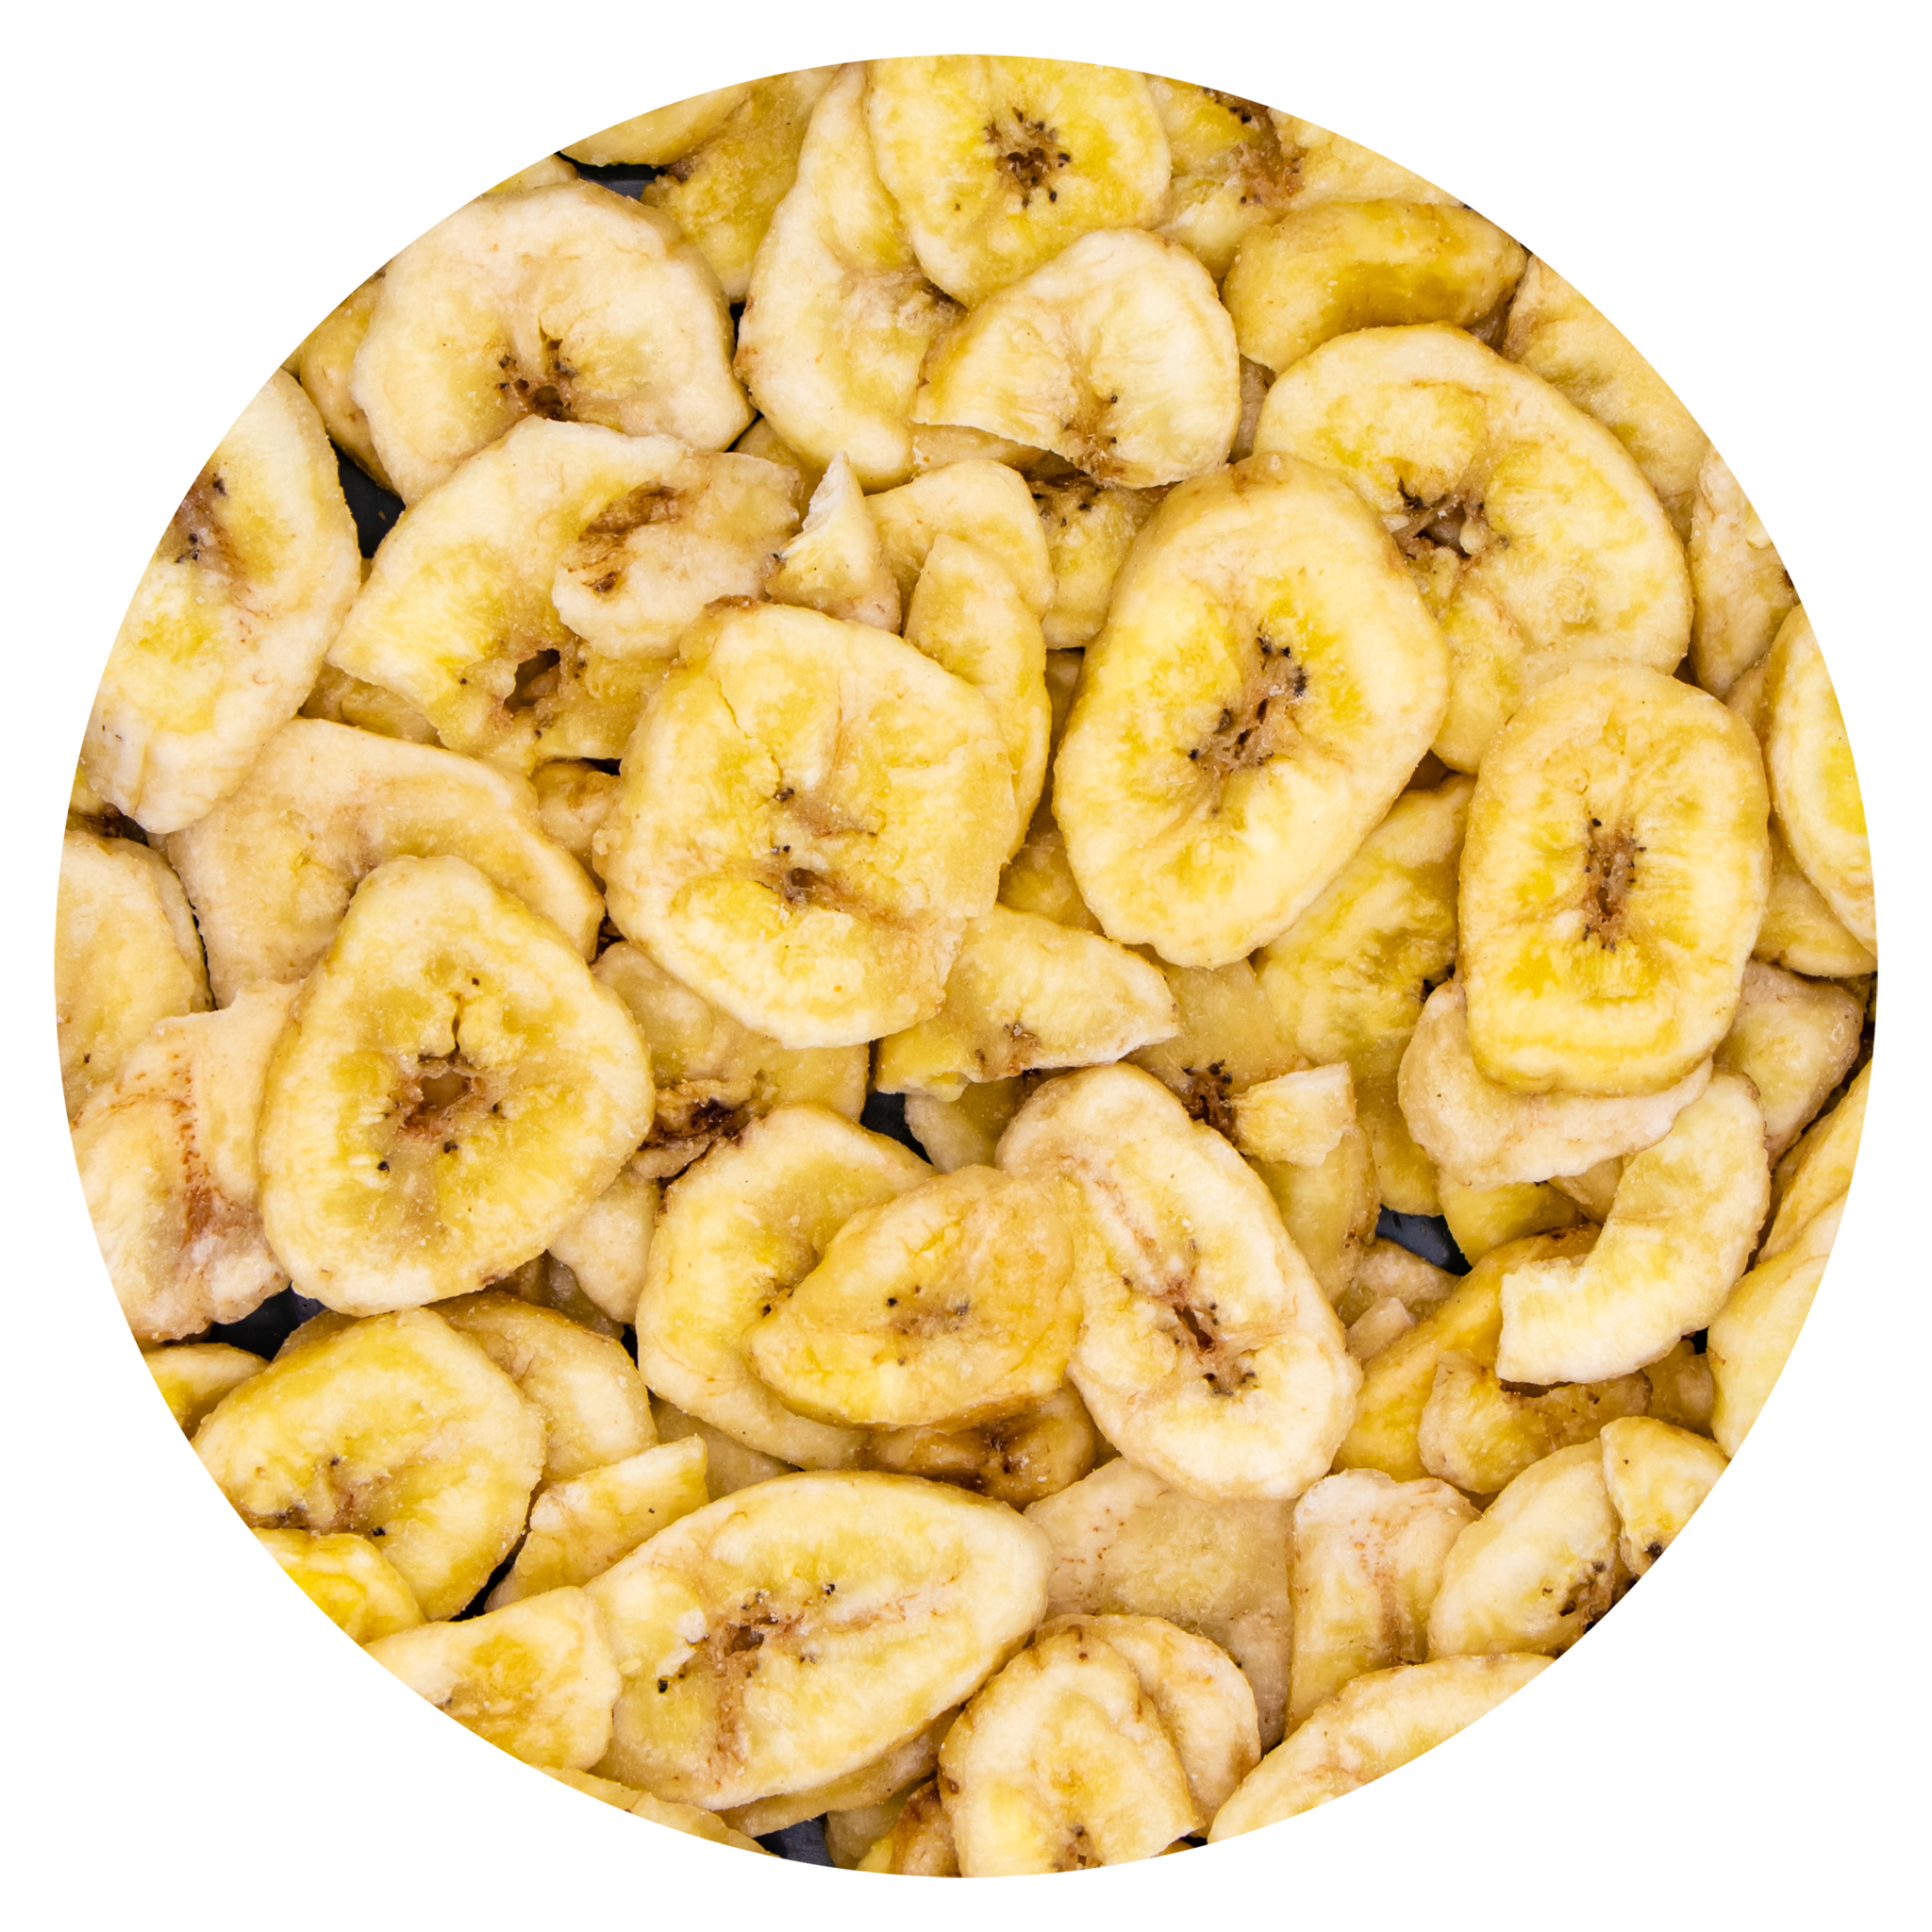 VDC Bananenchips